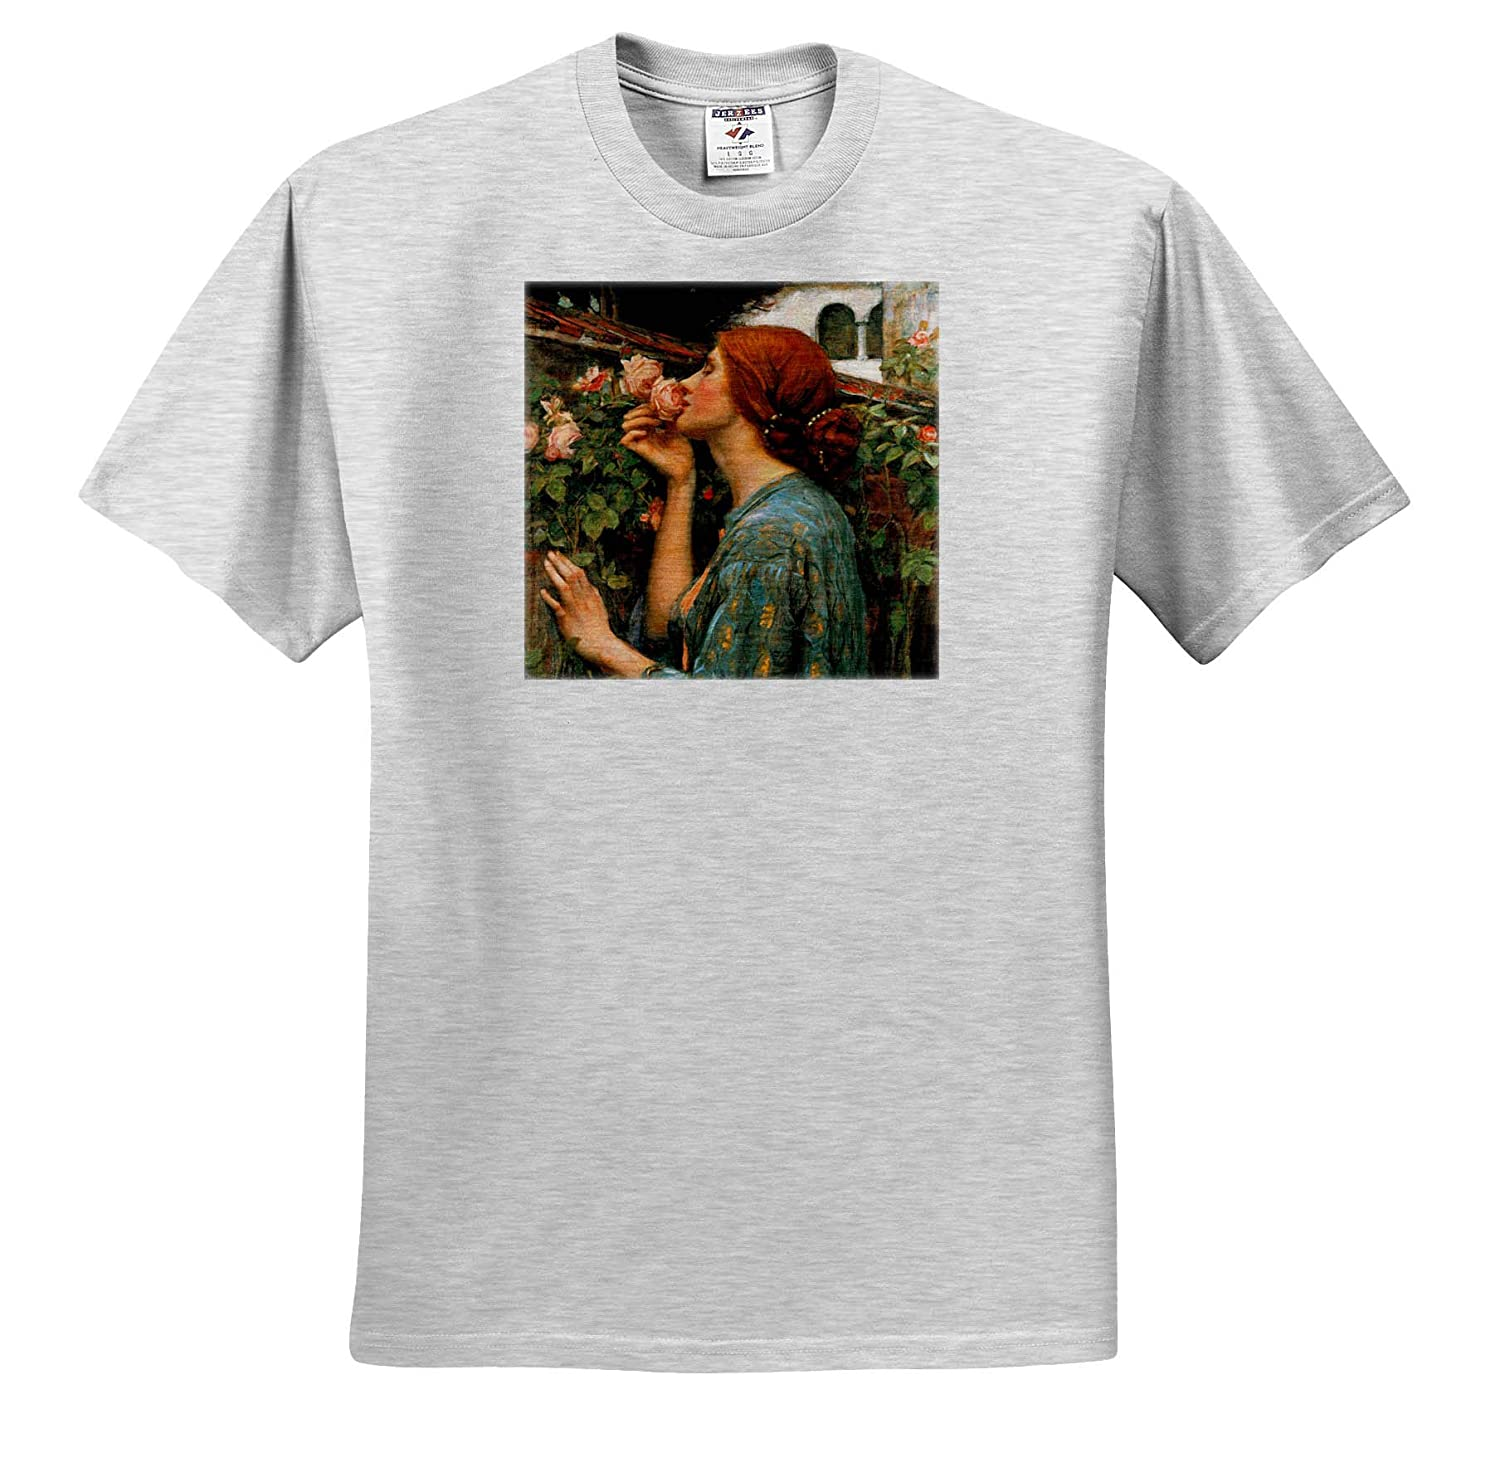 T-Shirts Smell of Roses Waterhouse 3dRose VintageChest Masterpieces